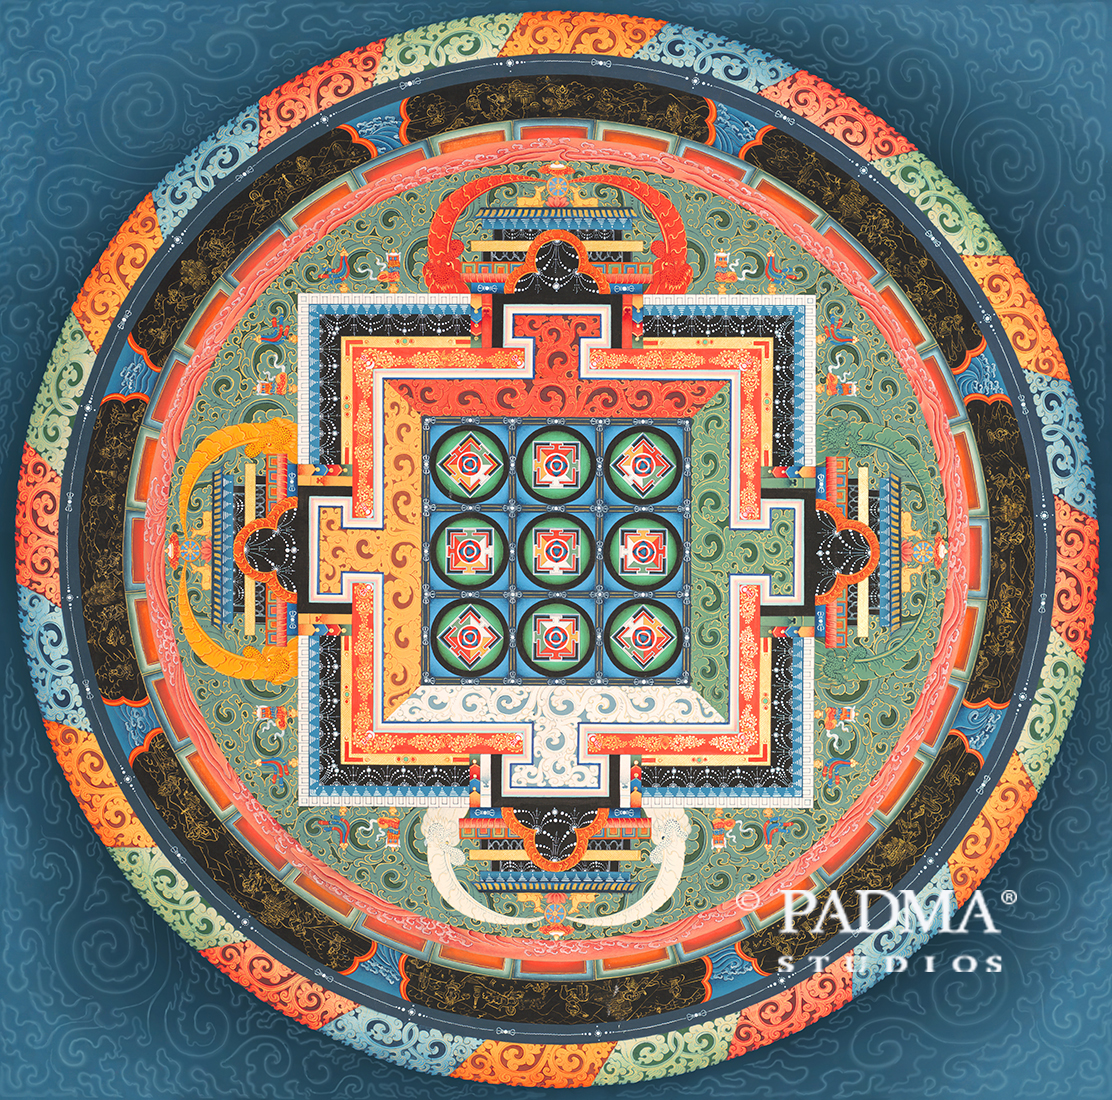 Two-dimensional Nyingma Mandala of the Eight Doctrines painting by Pema Namdol Thaye